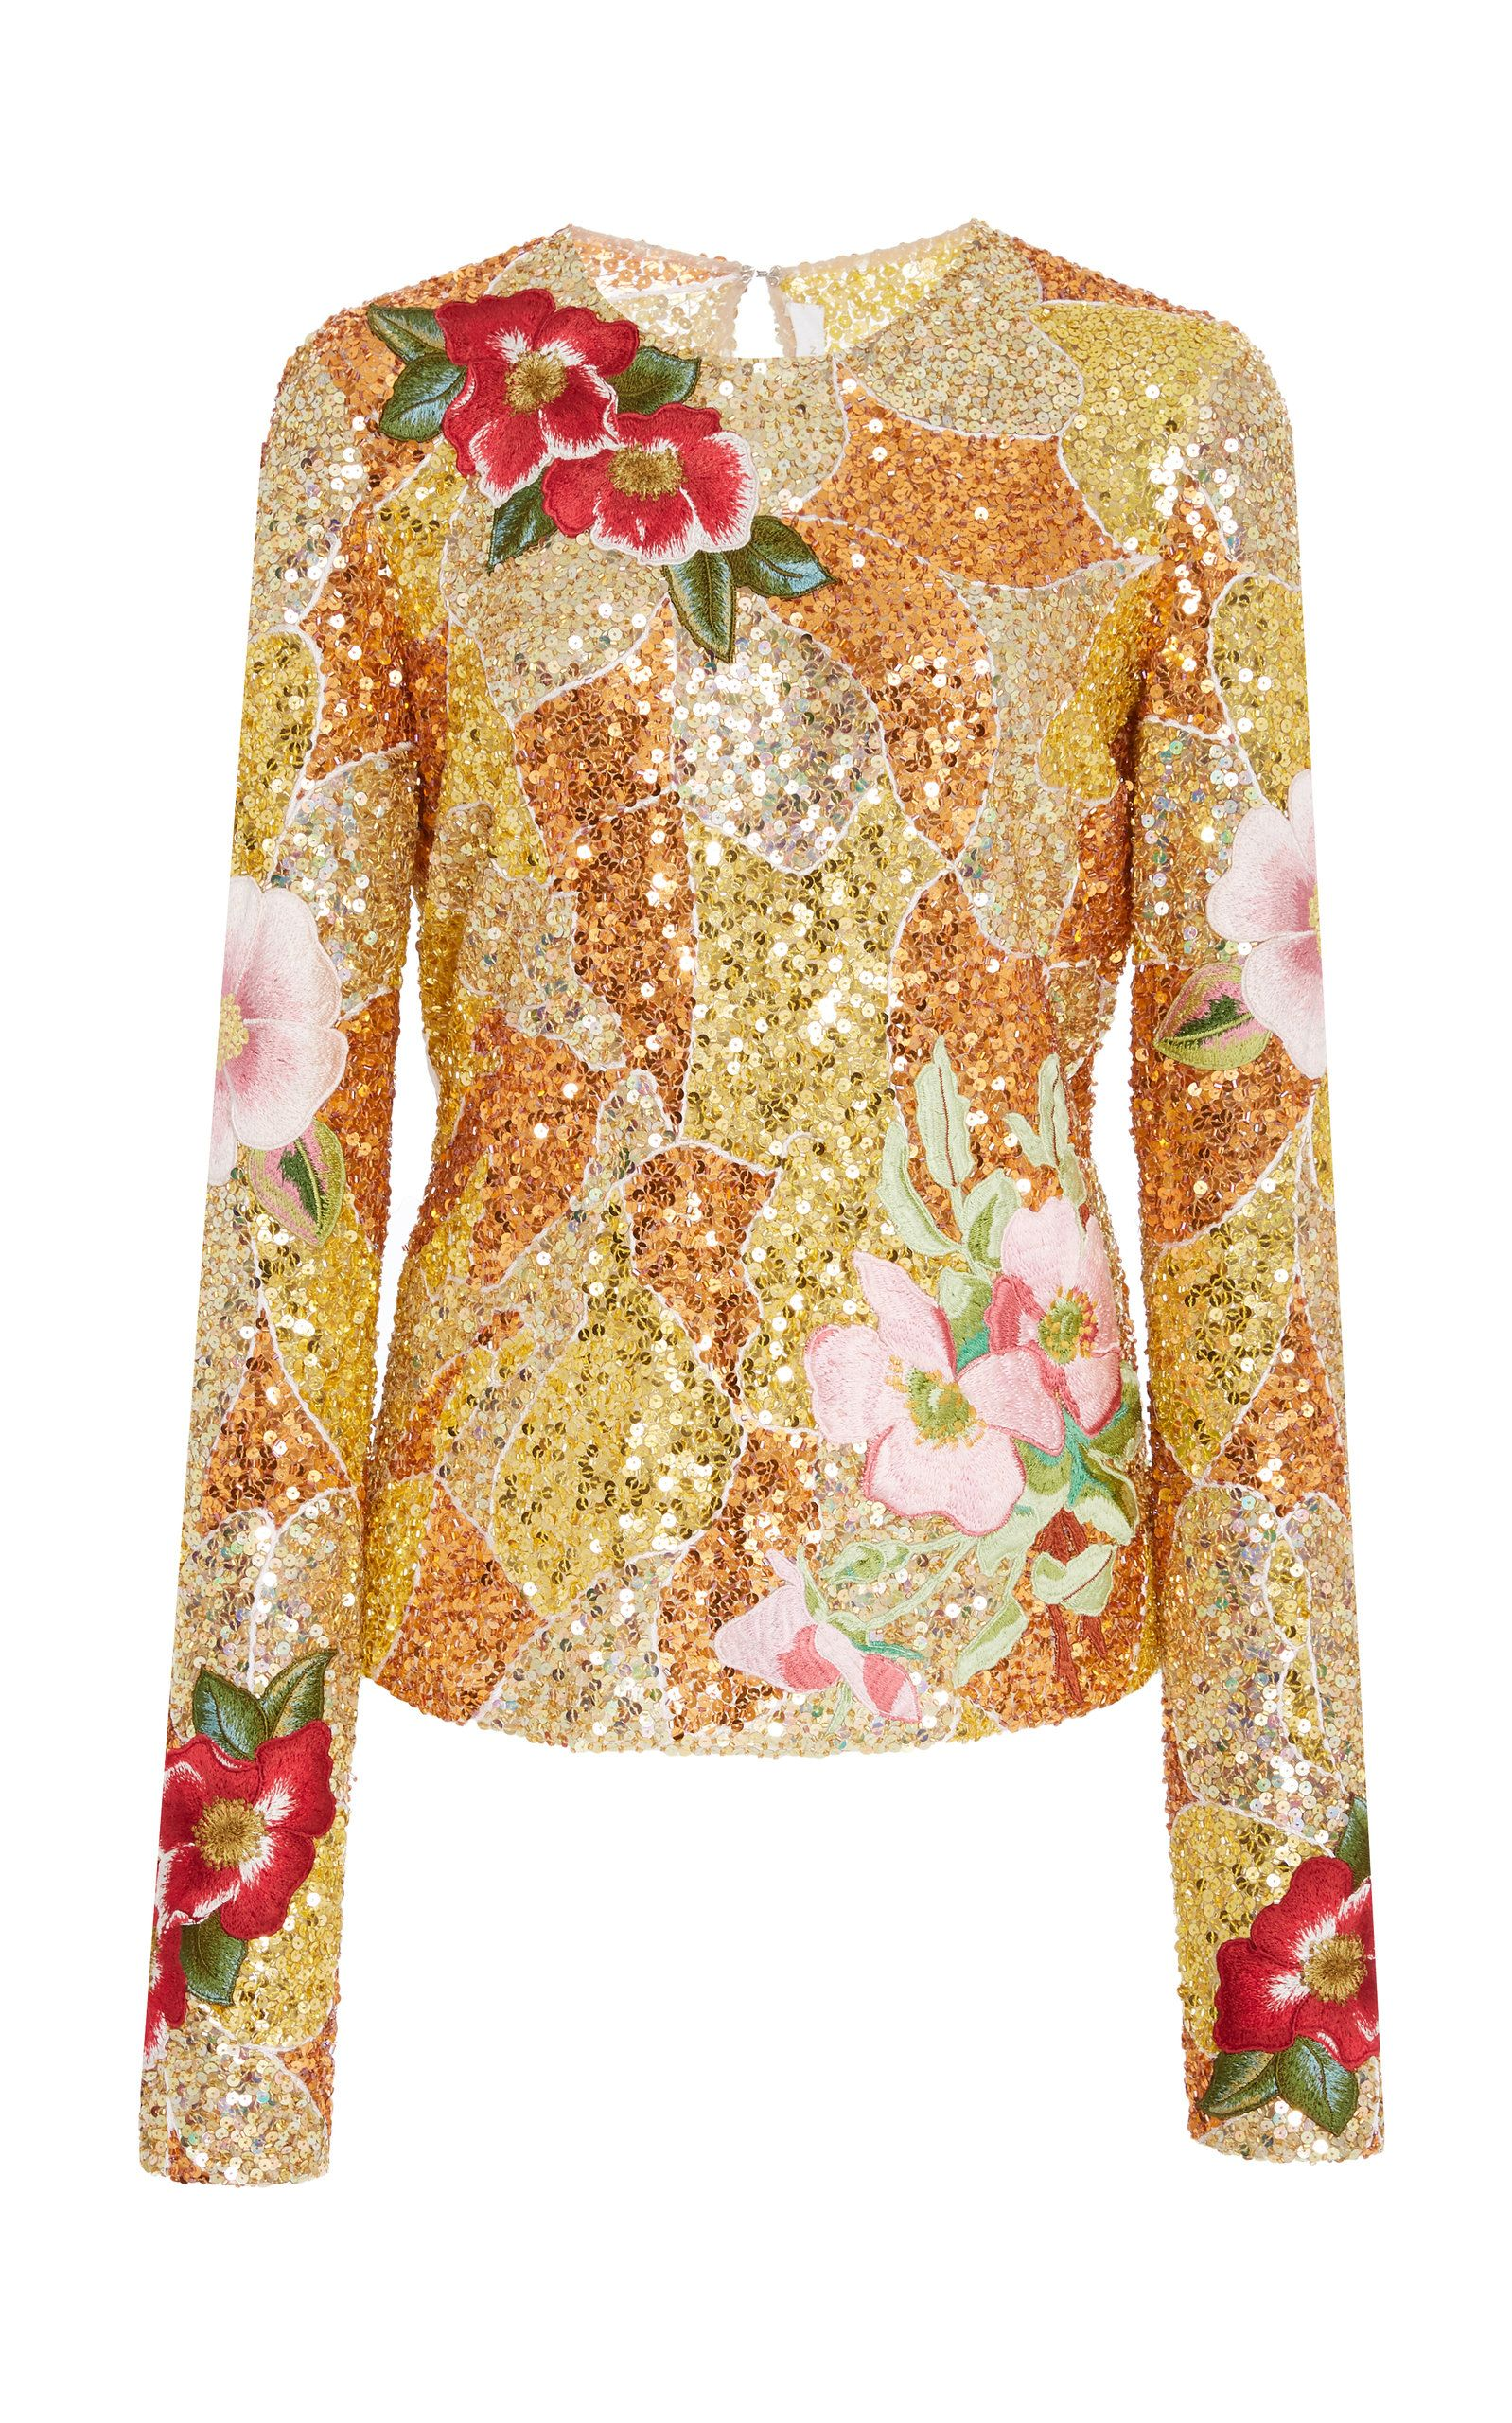 f8d3ed34af63a8 Embroidered Floral Sequin Top by NAEEM KHAN Now Available on Moda Operandi  Sequin Top